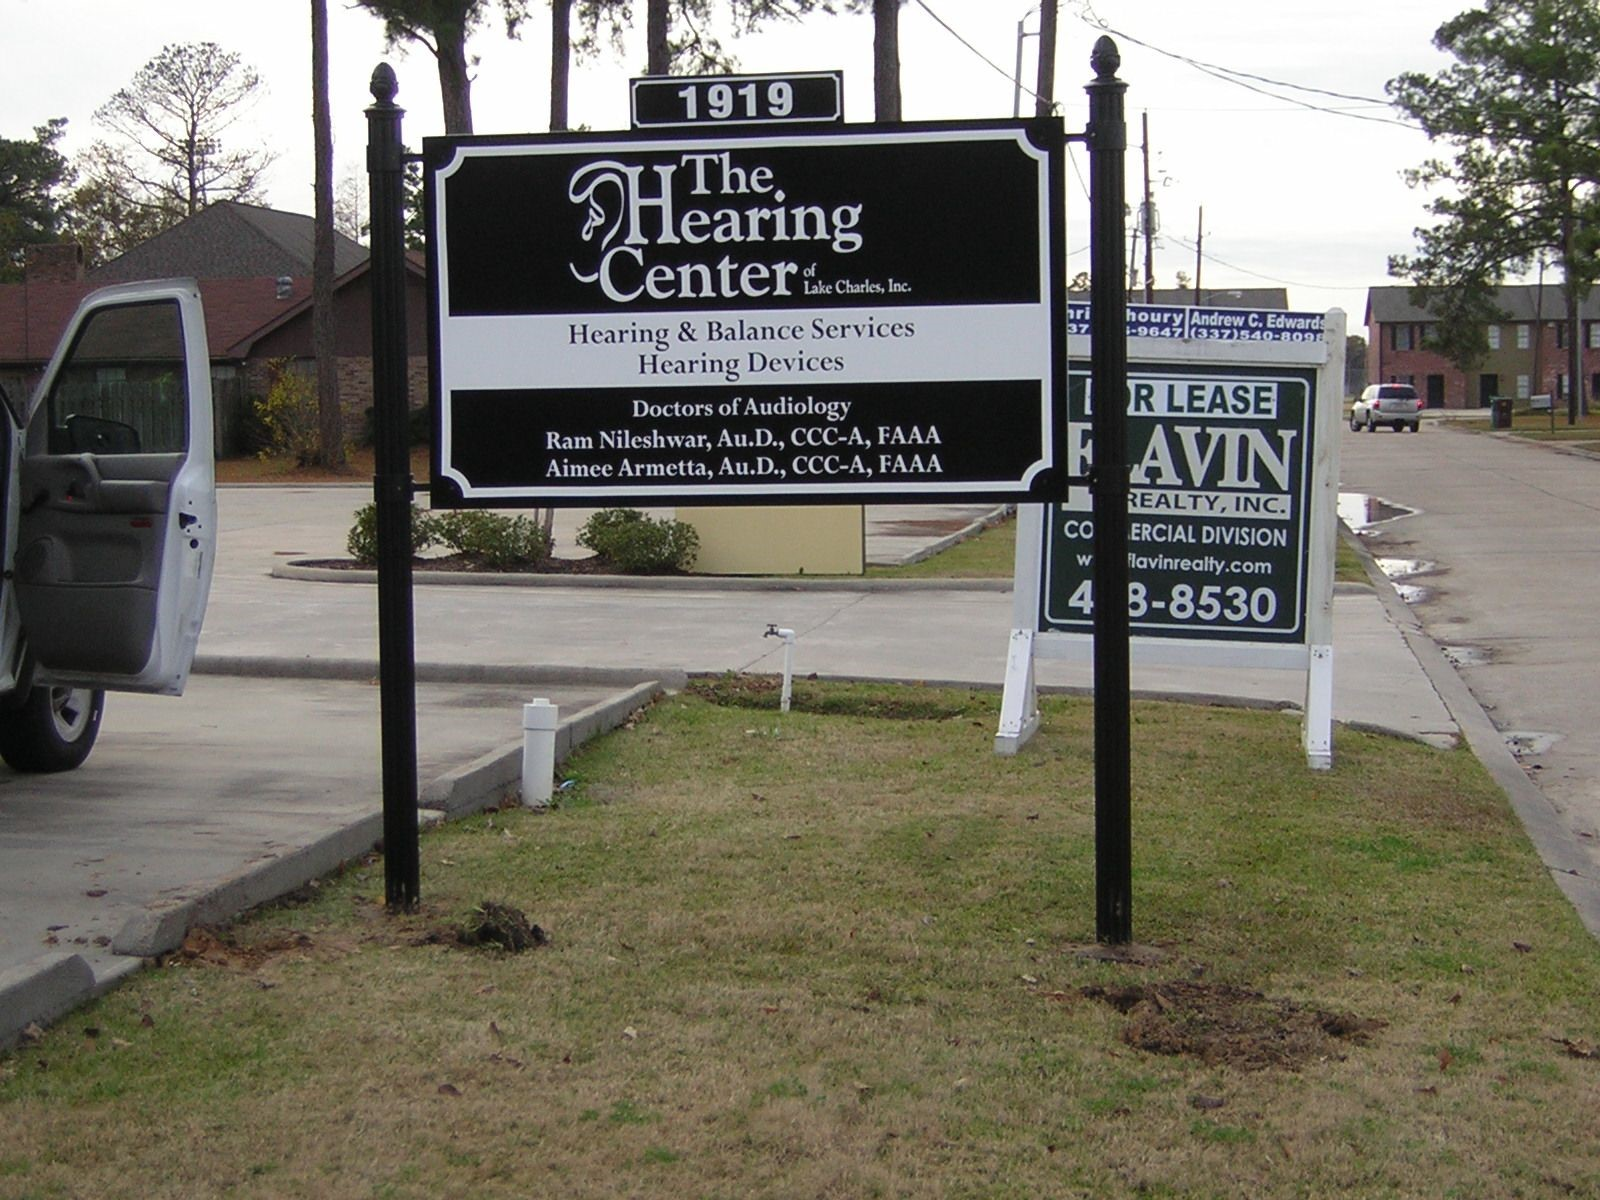 The Hearing Center Post and Panel Signage in Lake Charles, LA